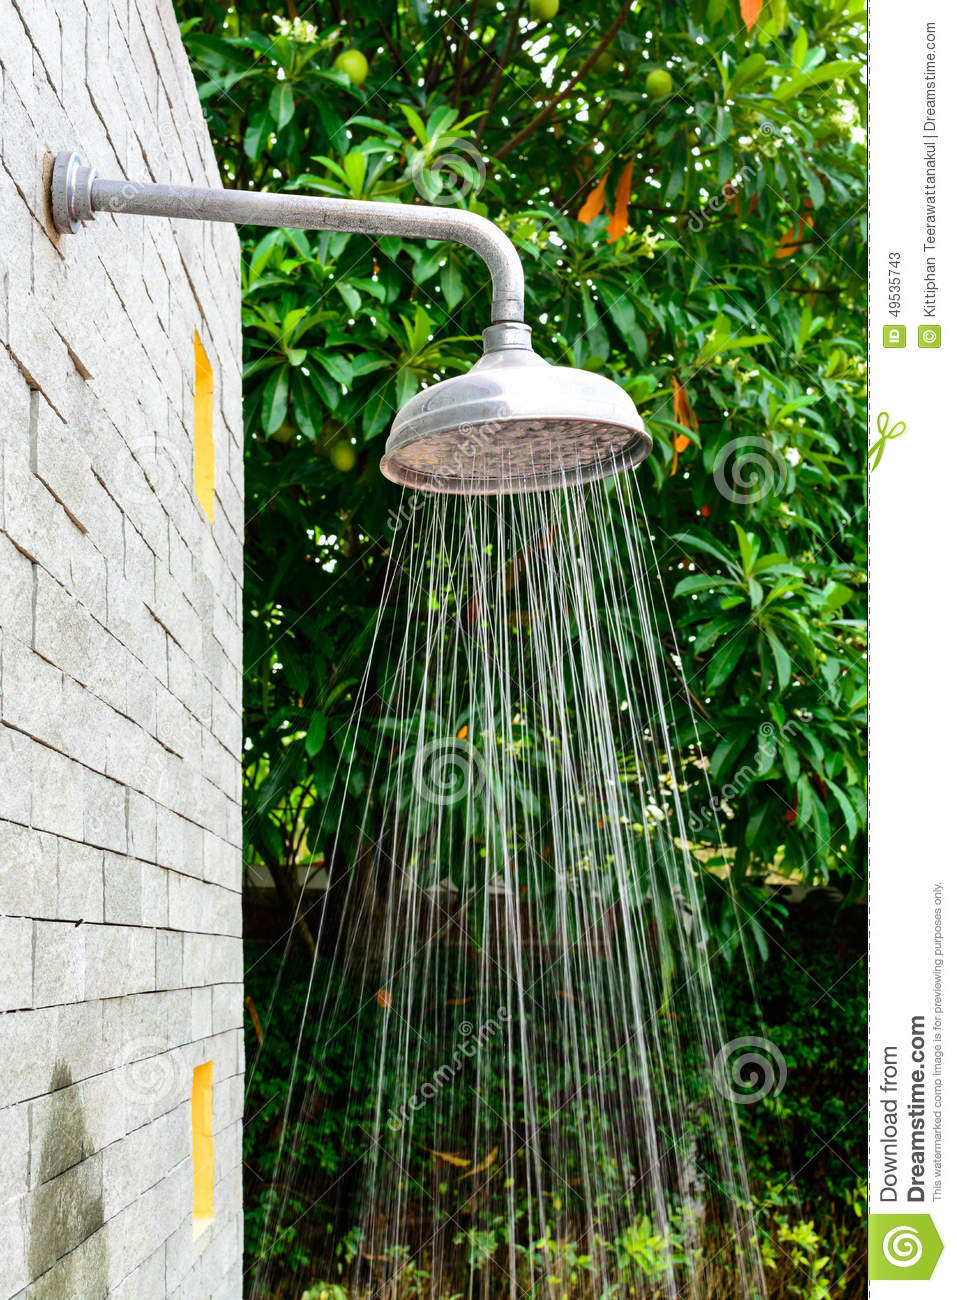 Outdoor shower head stock image. Image of green, clean - 49535743